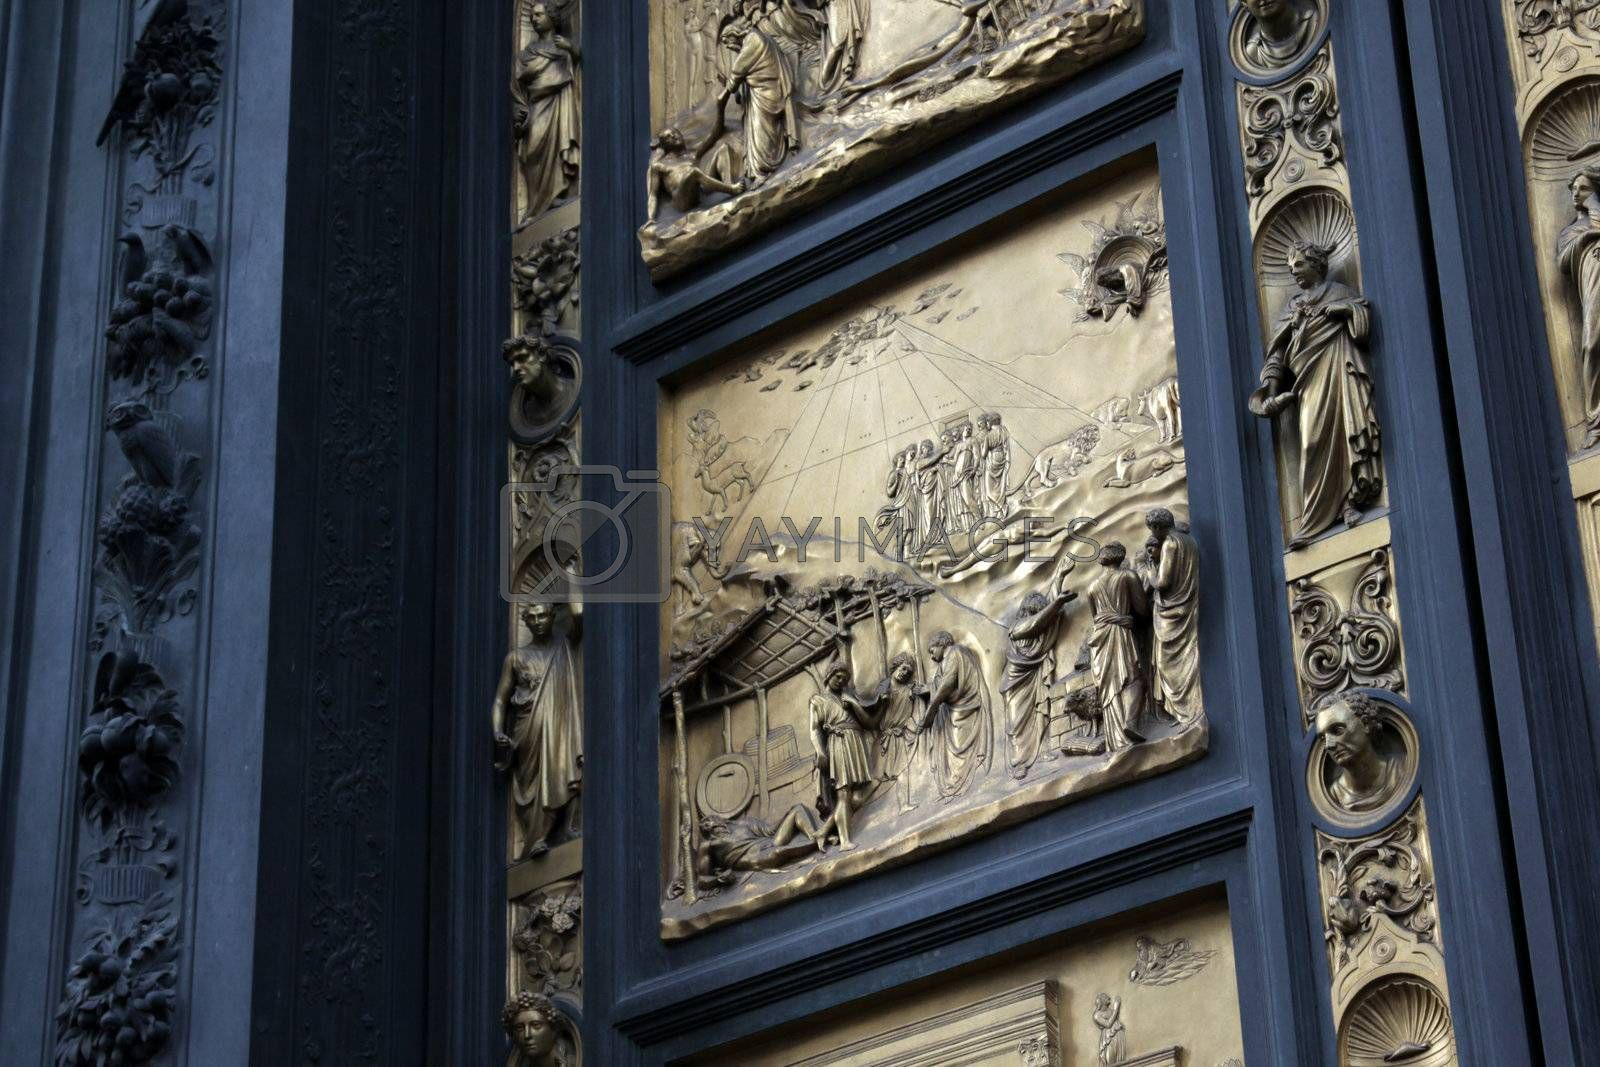 The Noah panel in the 'Gates of Paradise', doors of the Baptistry of the Florence cathedral (Duomo).  This is a replica of the original.